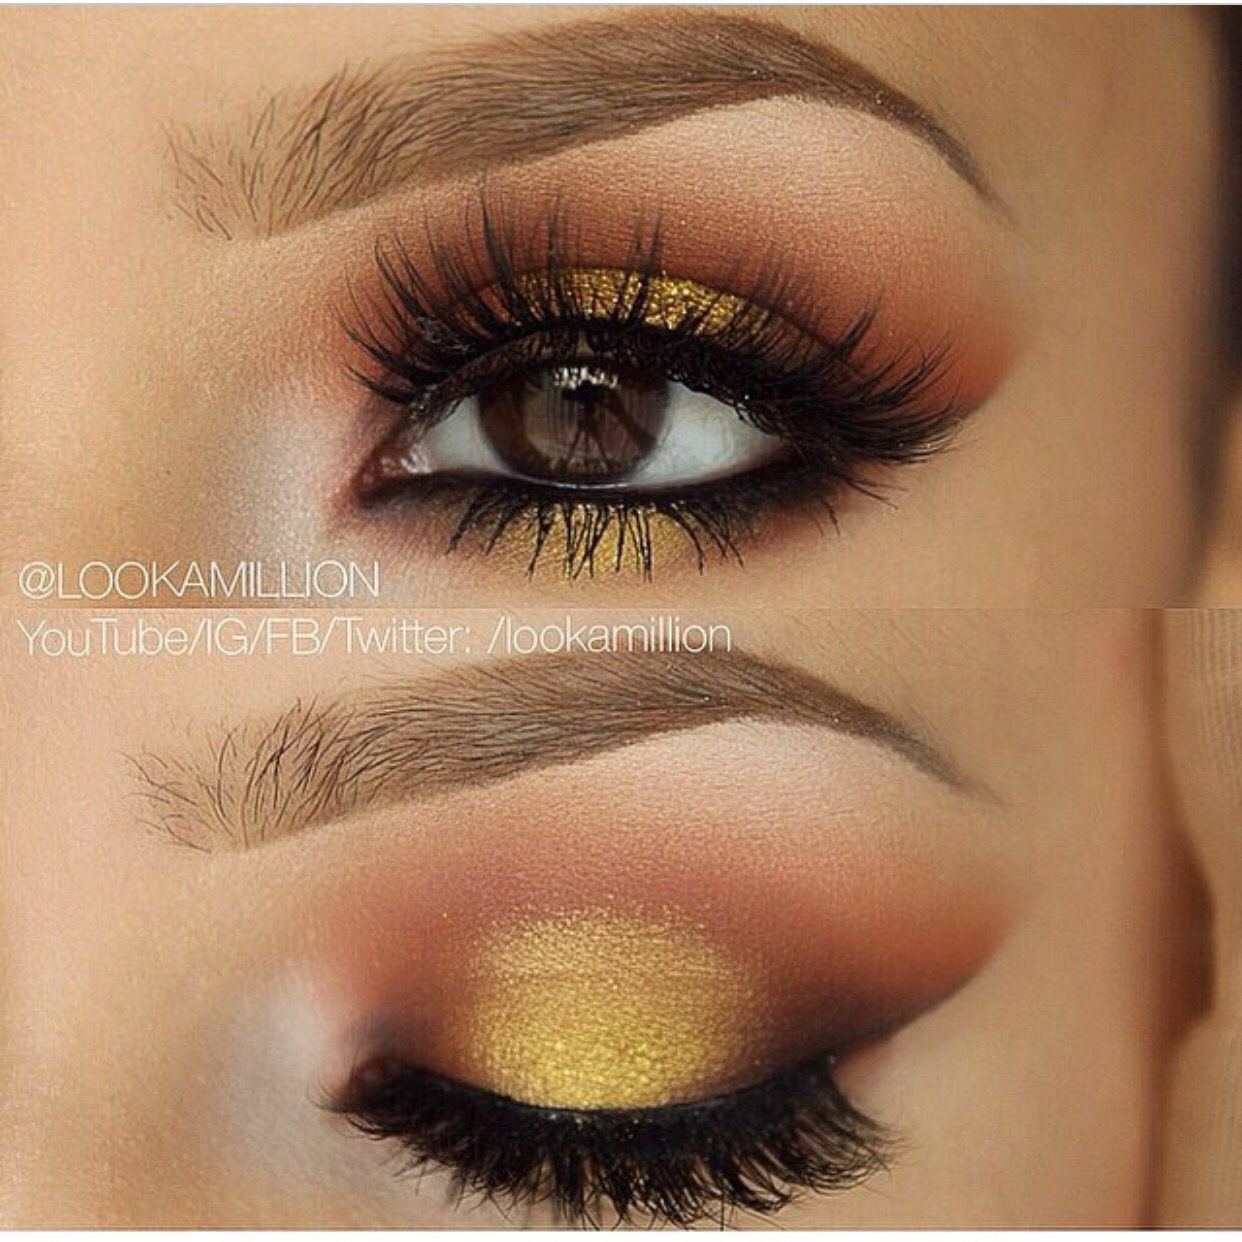 Another Cute Yellow Preferred Eye Makeup Look Very Similar To The